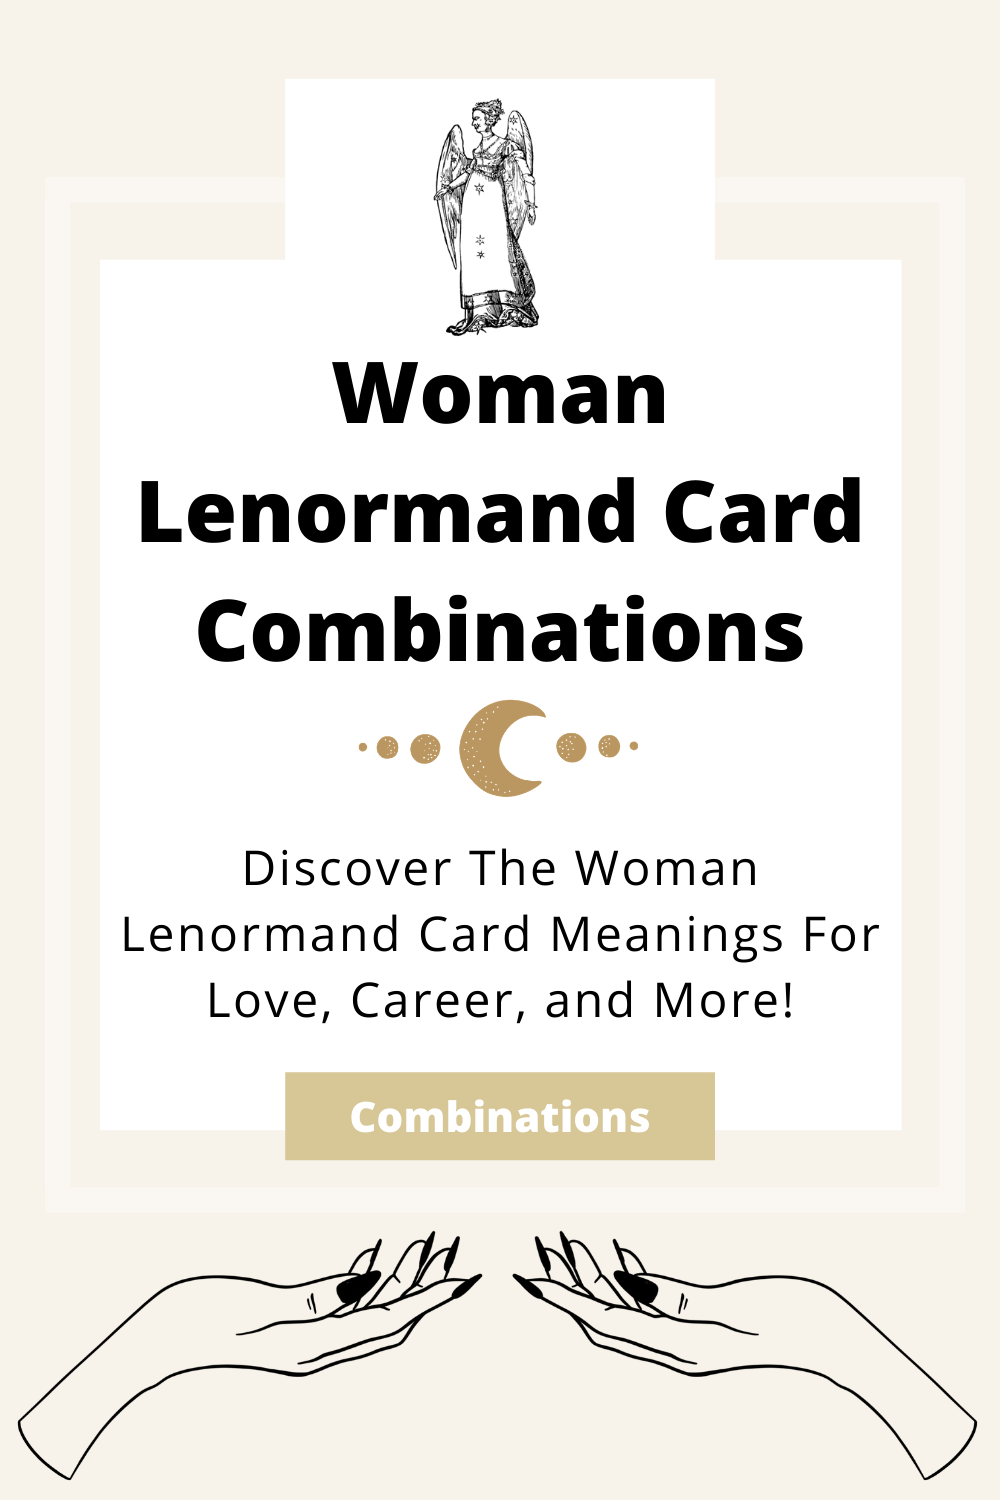 Lenormand Woman Combinations